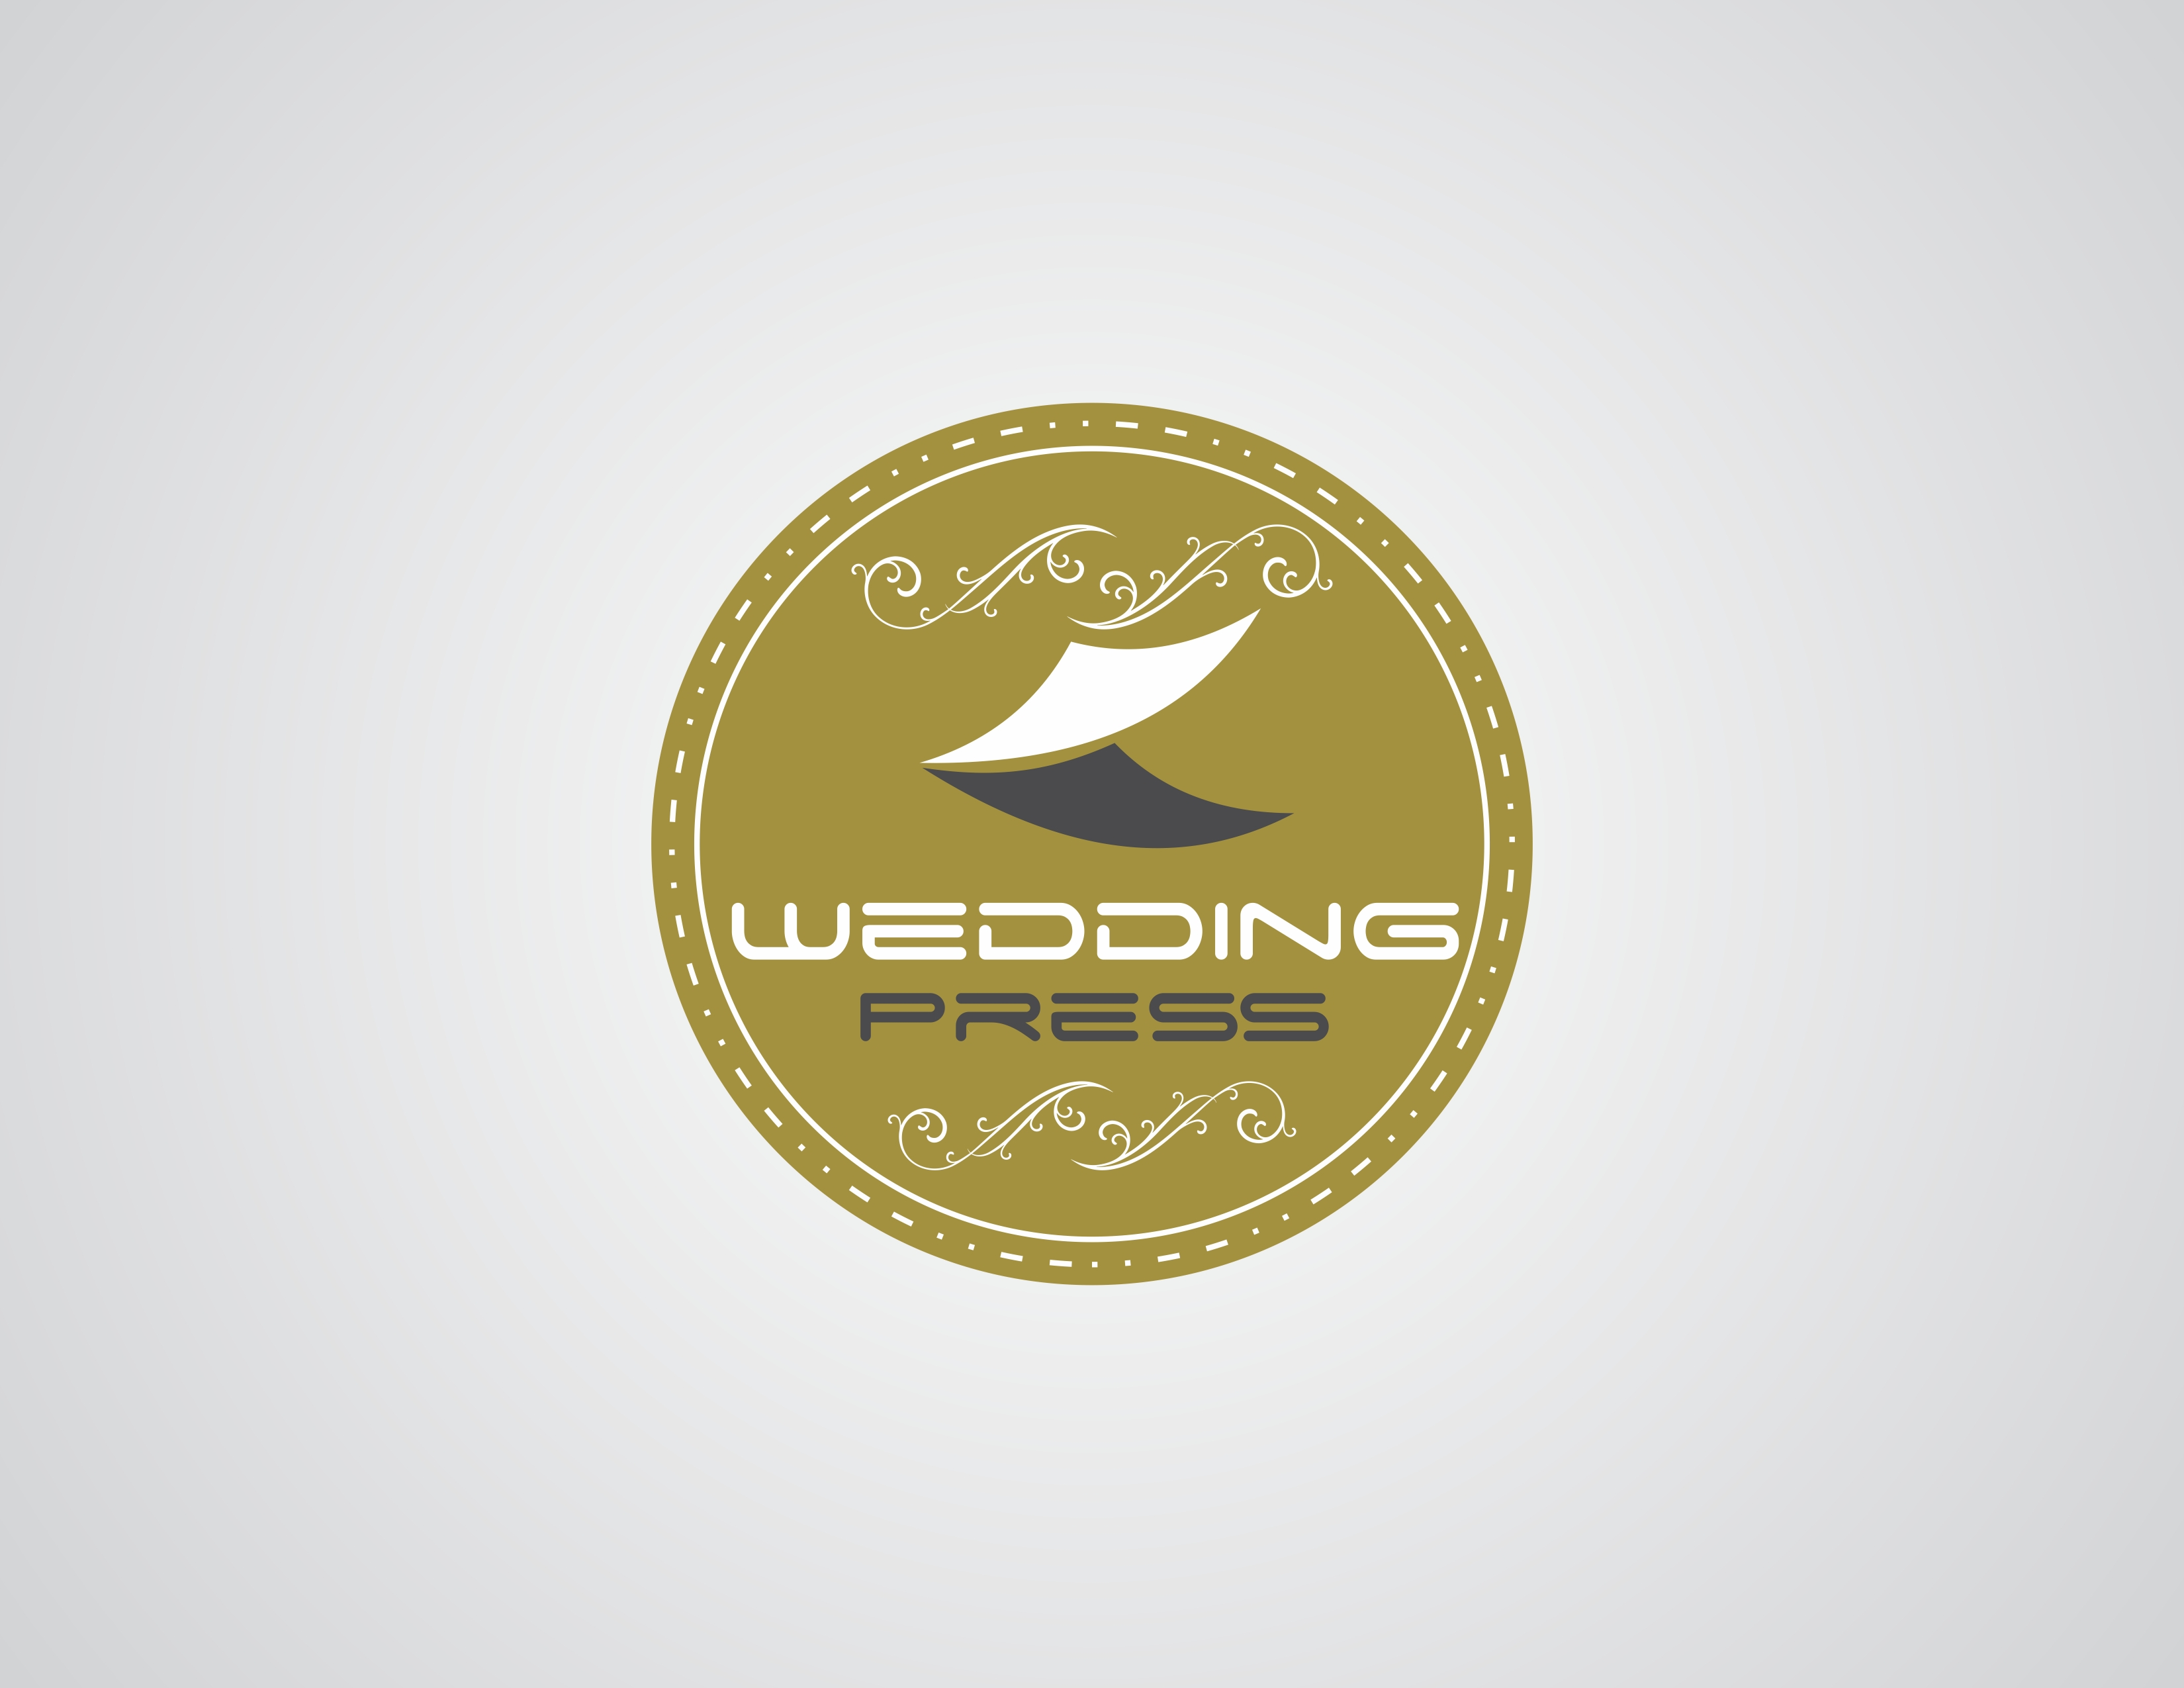 Logo Design by Rizwan Saeed - Entry No. 75 in the Logo Design Contest Wedding Writes Logo Design.